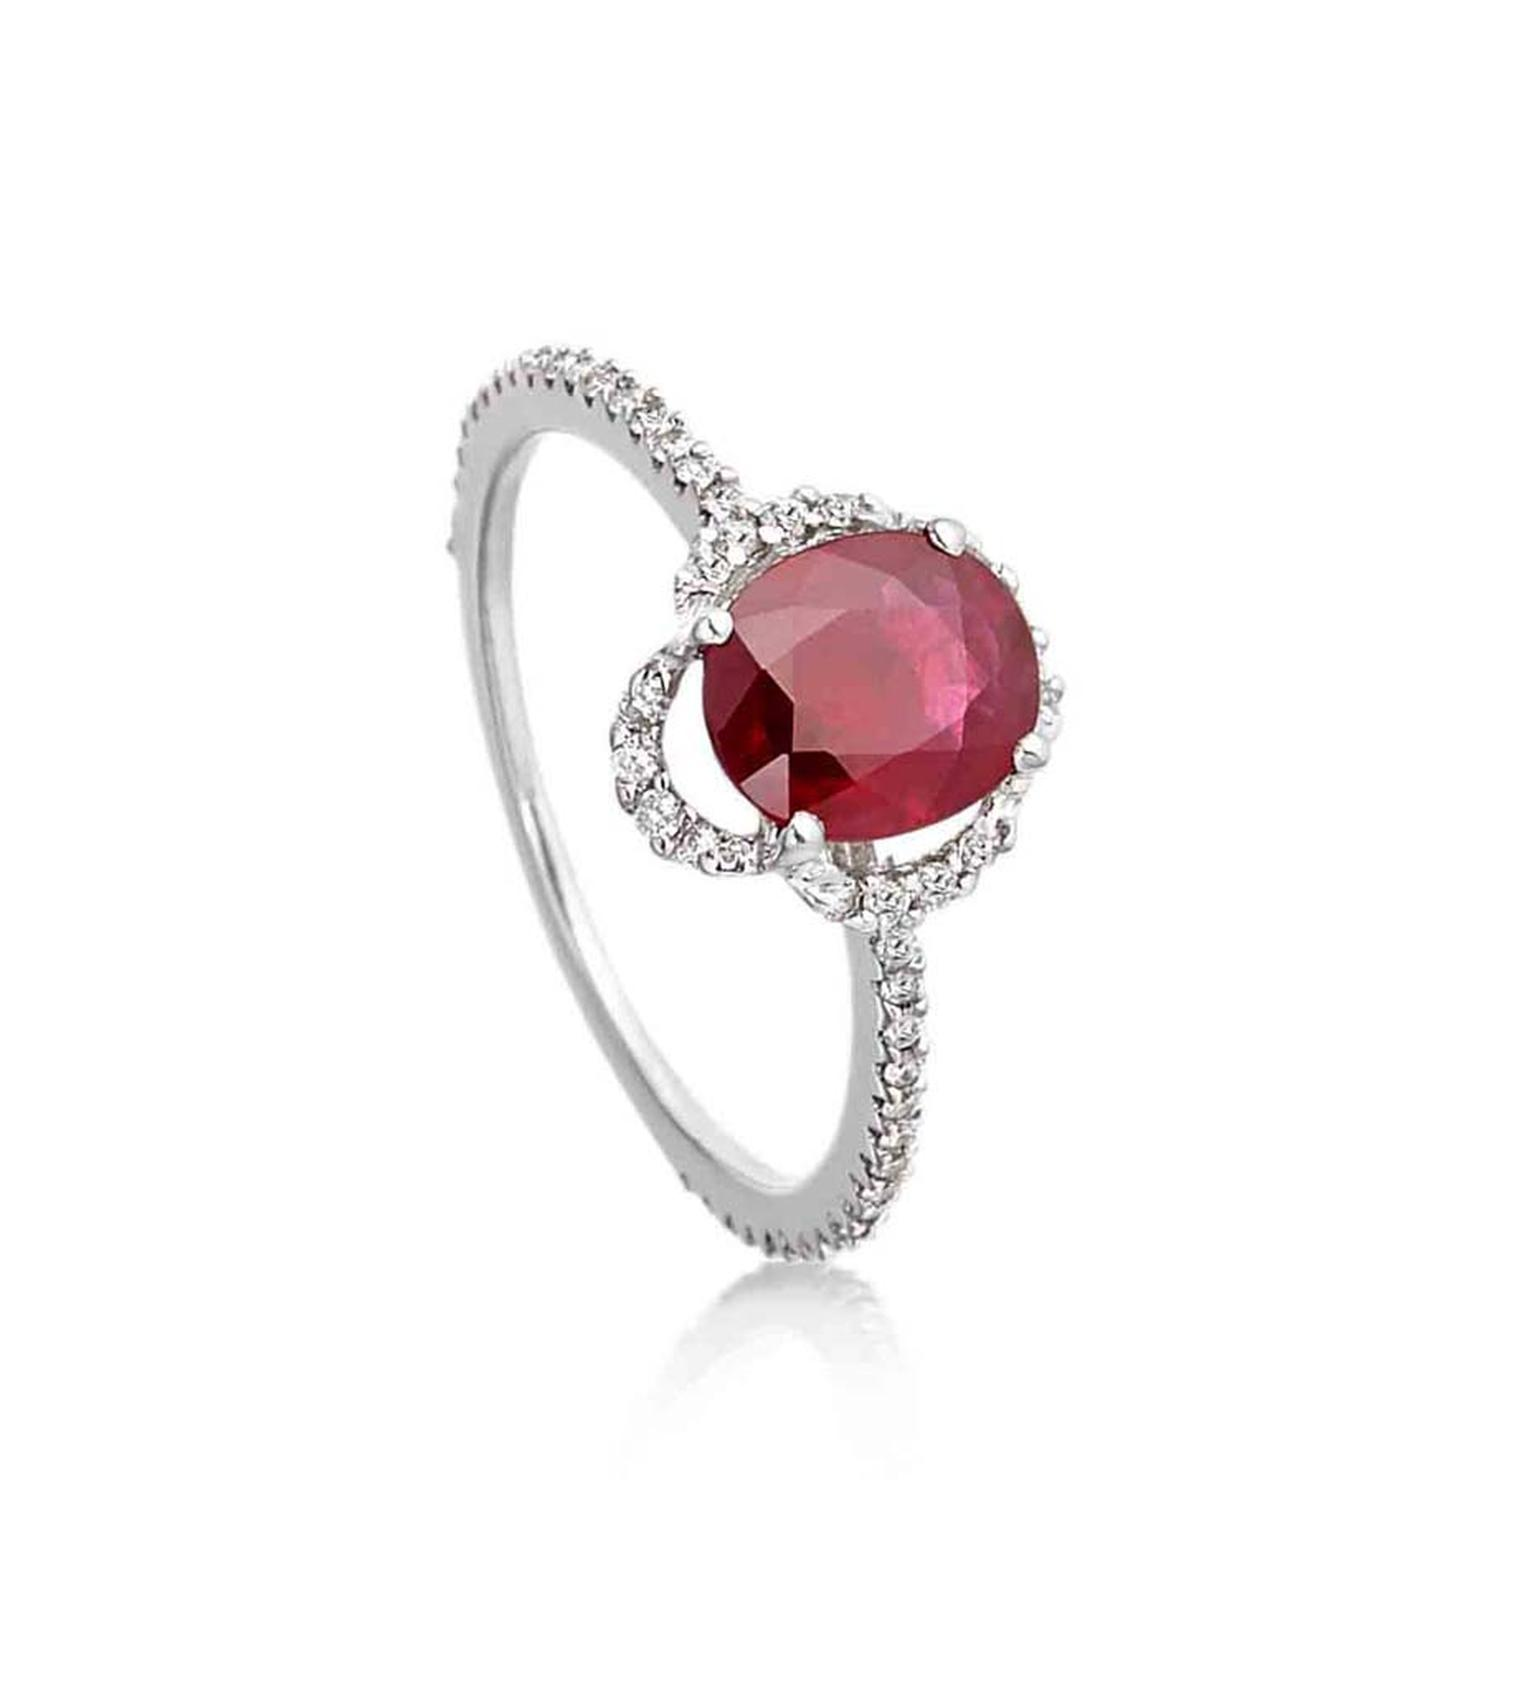 Amrapali ruby and diamond vintage-style engagement ring (£6,800).